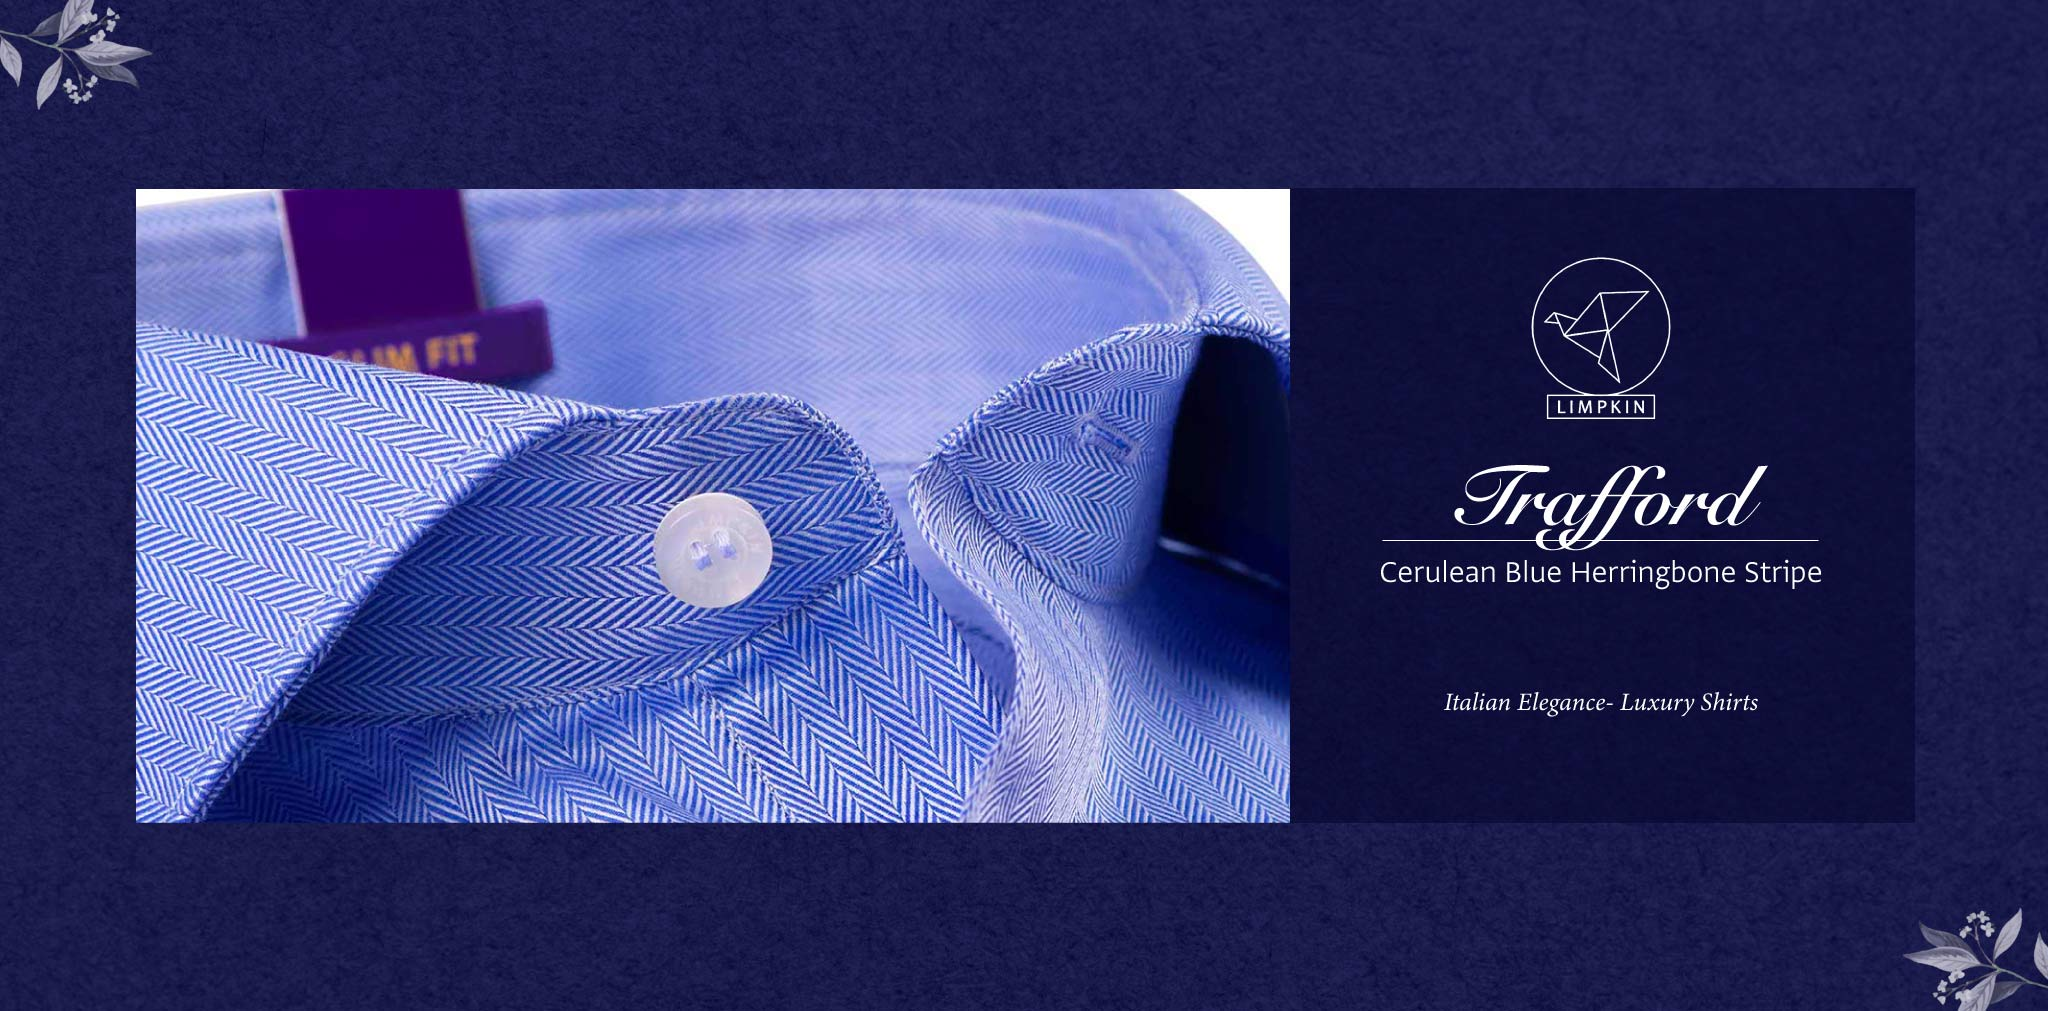 Trafford- Cerulean Blue Herringbone Stripe- 2 Ply Pure Egyptian Giza Cotton- Delivery from 20th April - Banner